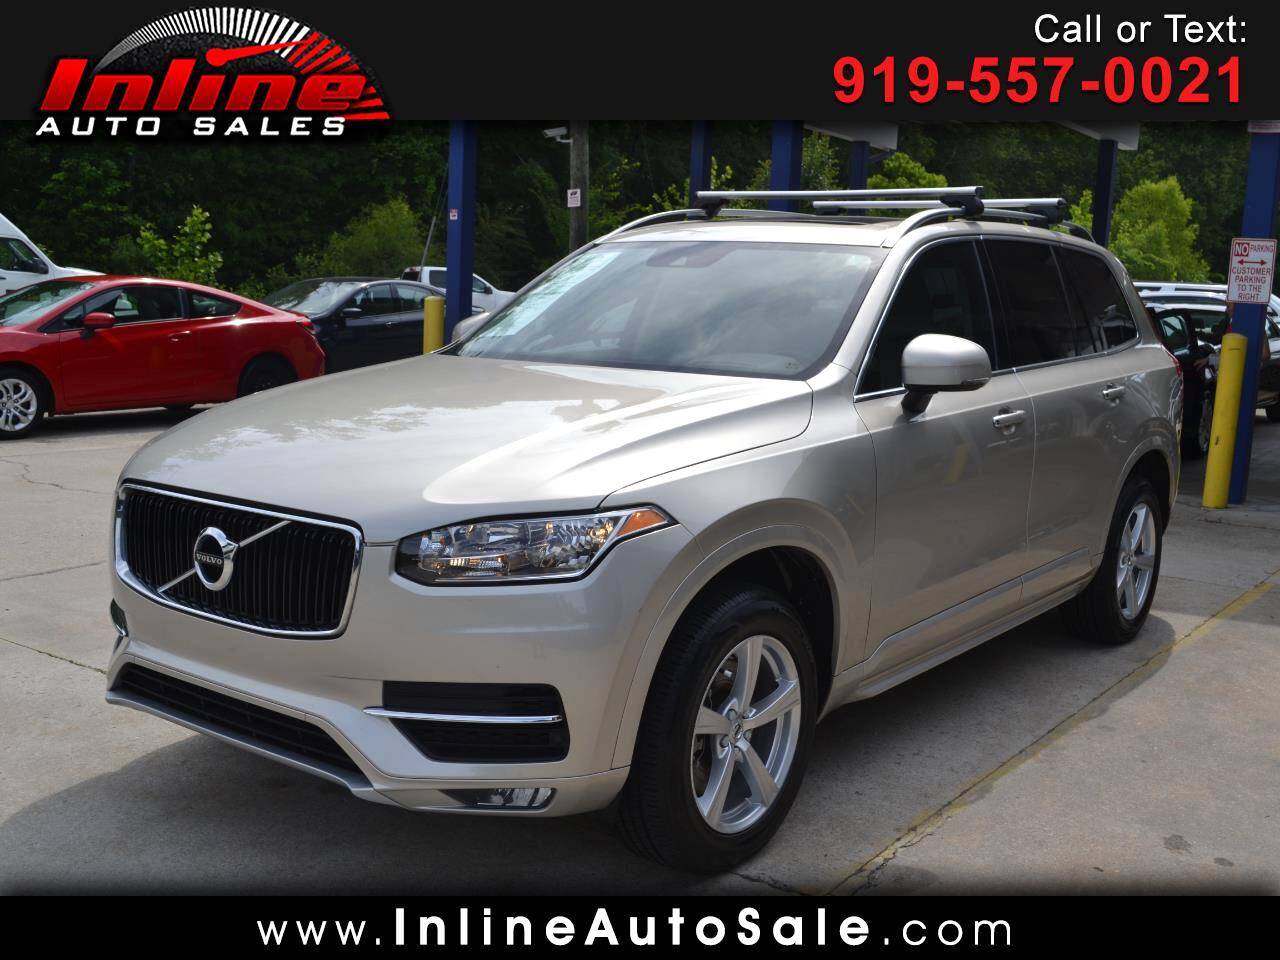 2016 Volvo XC90 FWD 4dr T5 Momentum